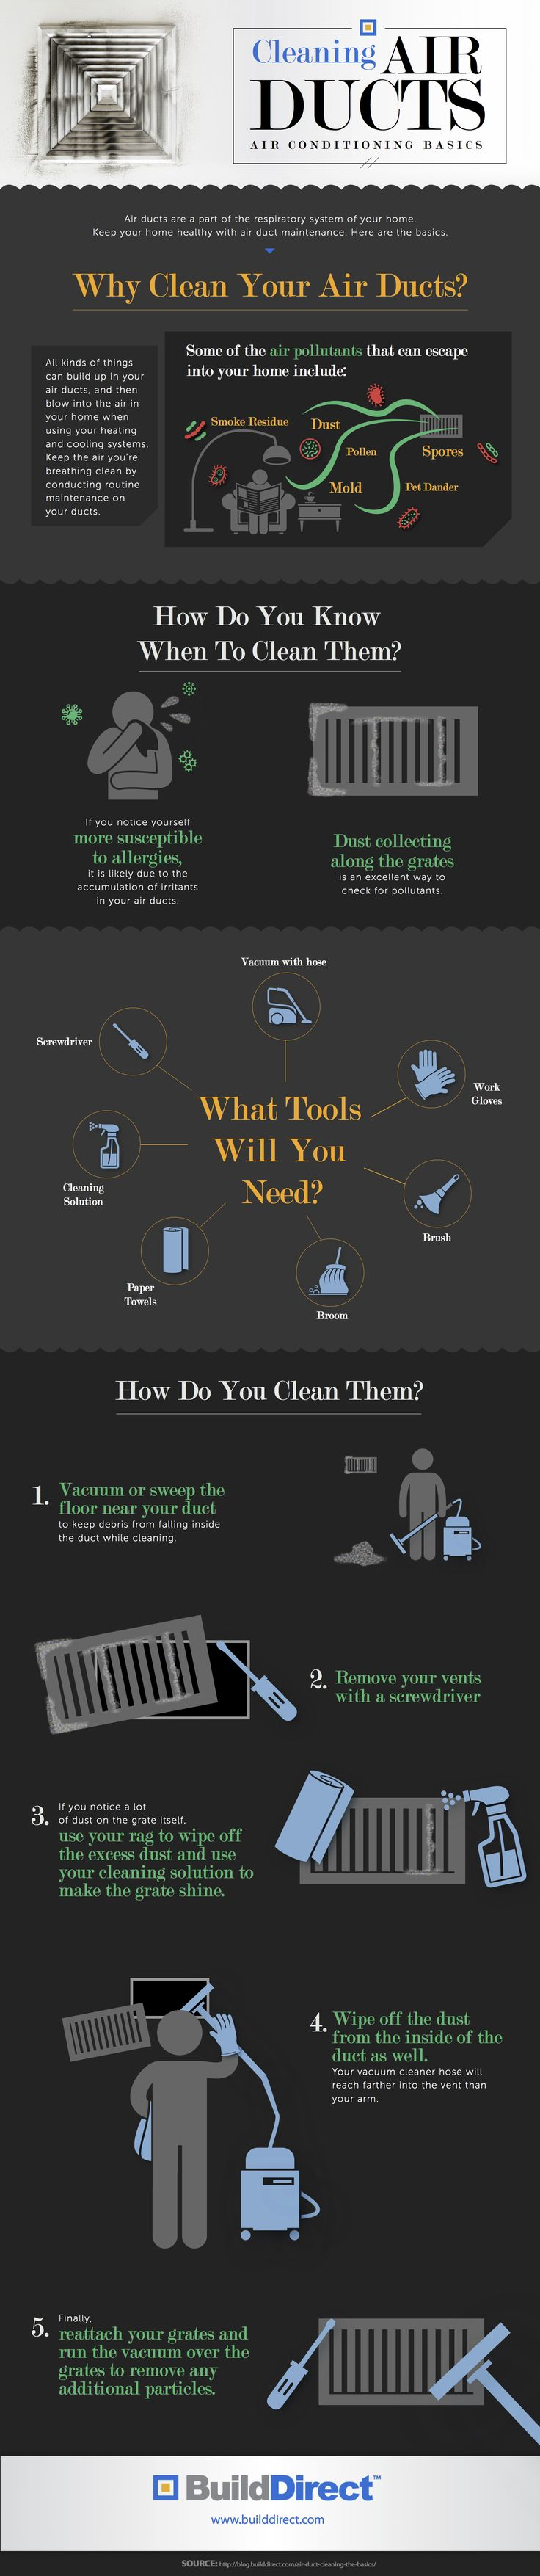 Air Duct Cleaning Basics: An Infographic  http://blog.builddirect.com/air-duct-cleaning-basics-an-infographic/